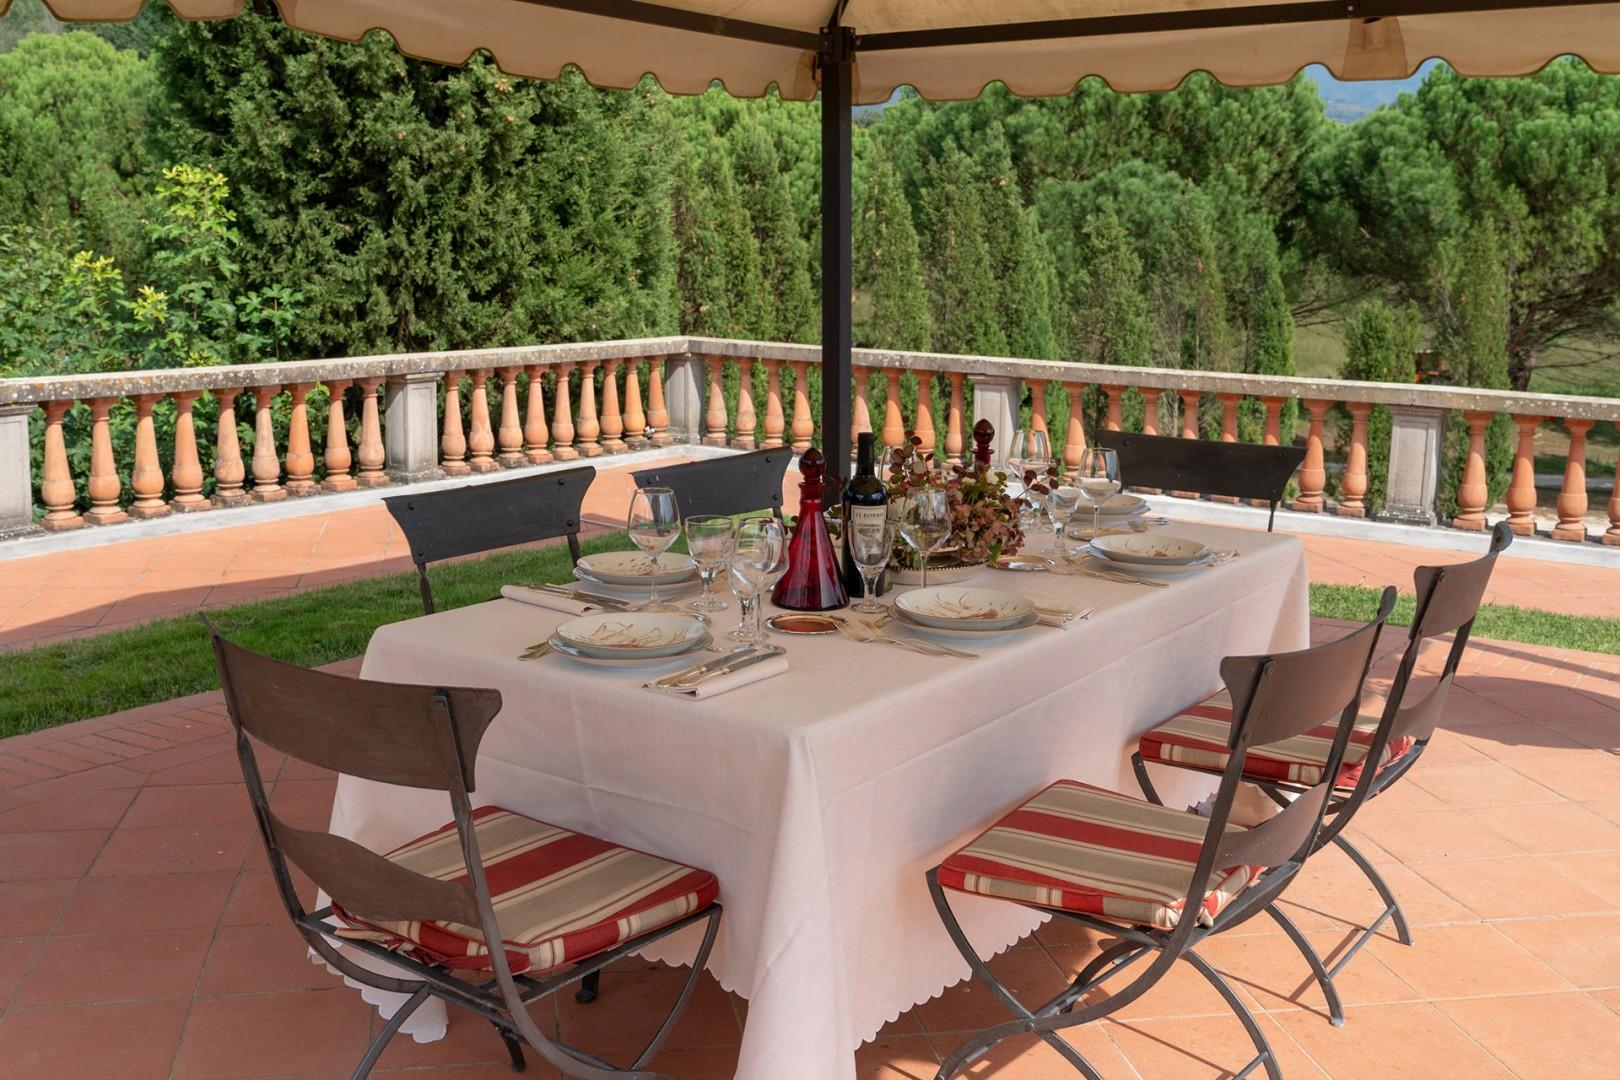 Lovely dining area on terrace.